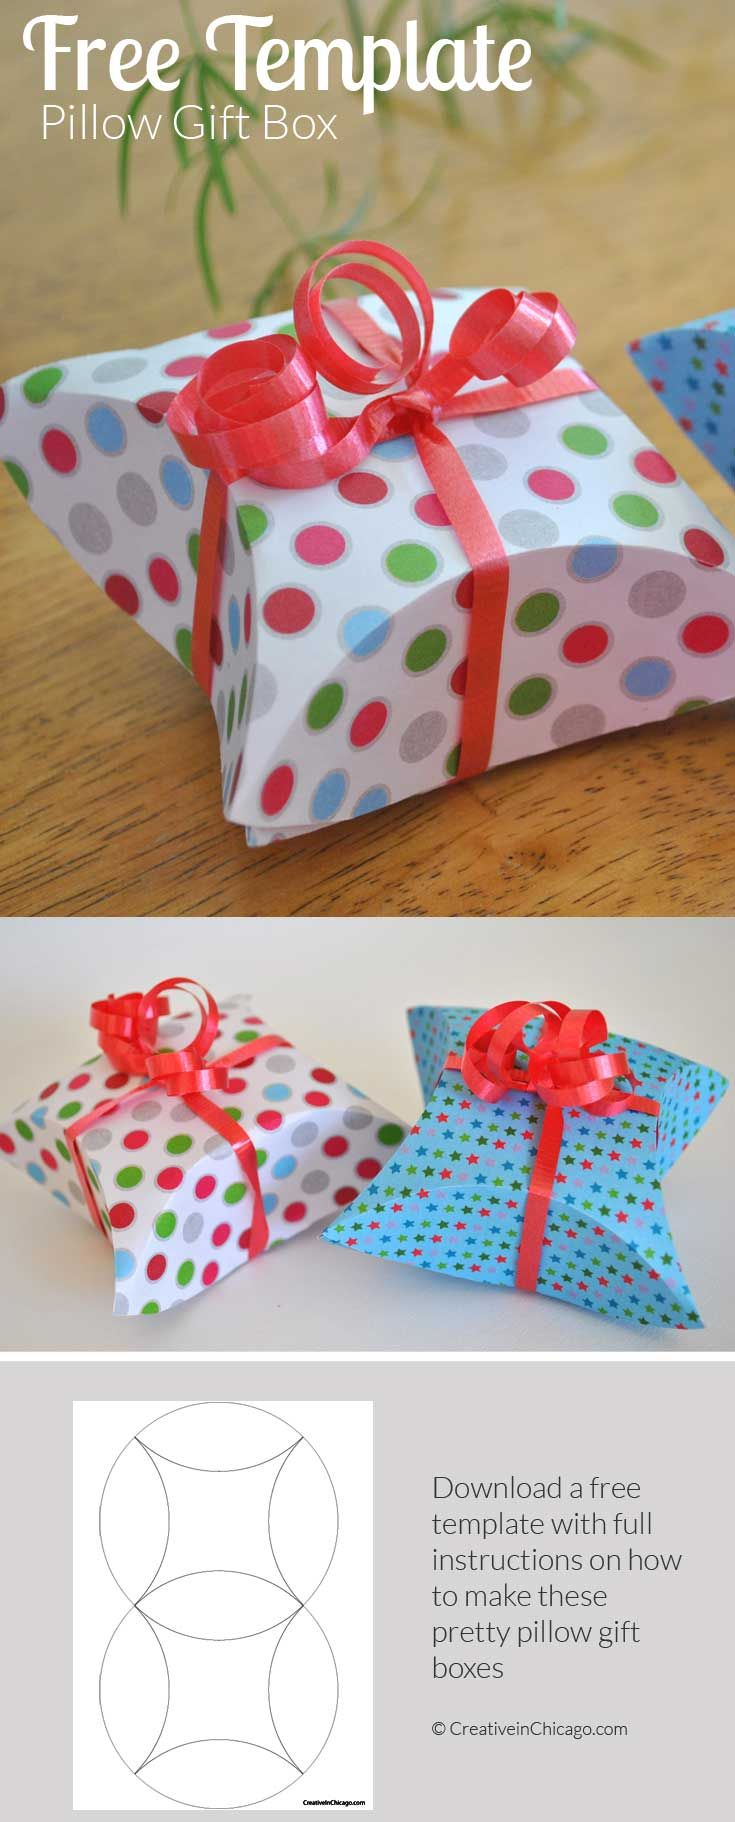 How To Make A Pillow Gift Box With Free Template Gift Box Template Homemade Gift Boxes Diy Gift Box Template